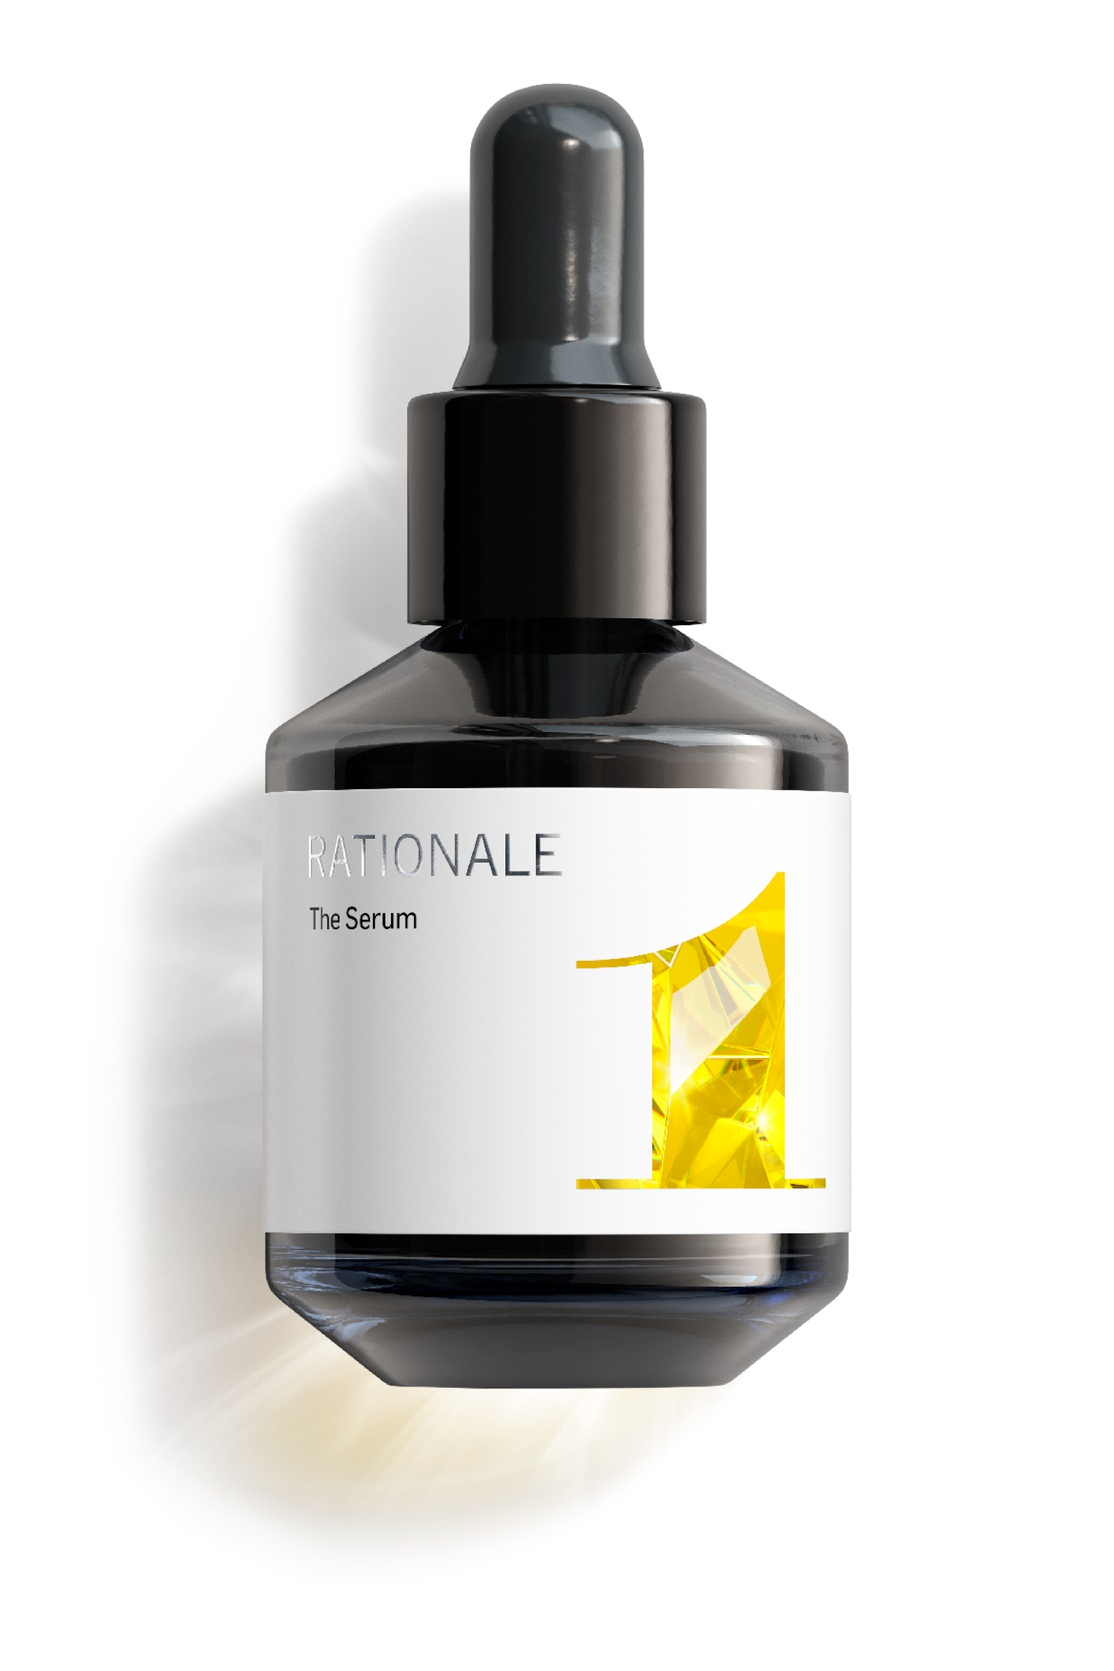 Rationale #1 The Serum